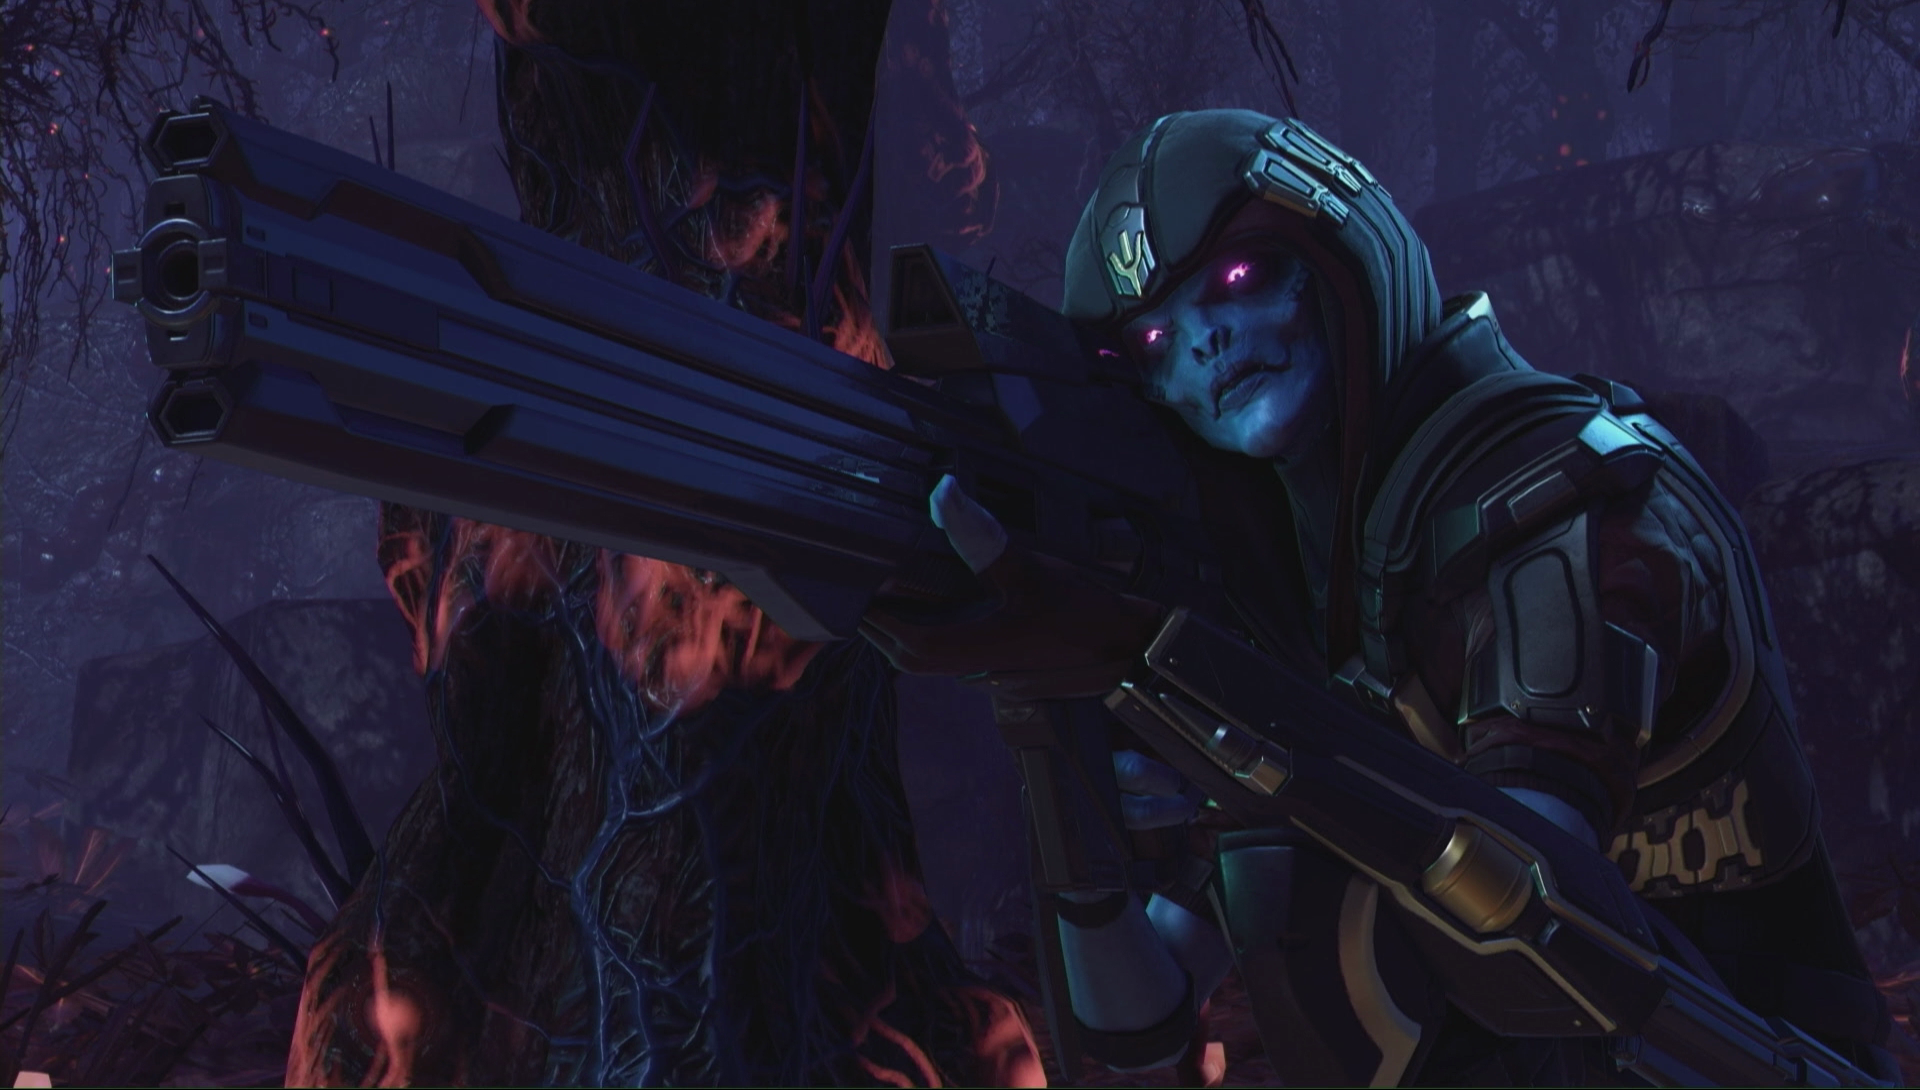 XCOM 2: War of the Chosen announced at E3 2017